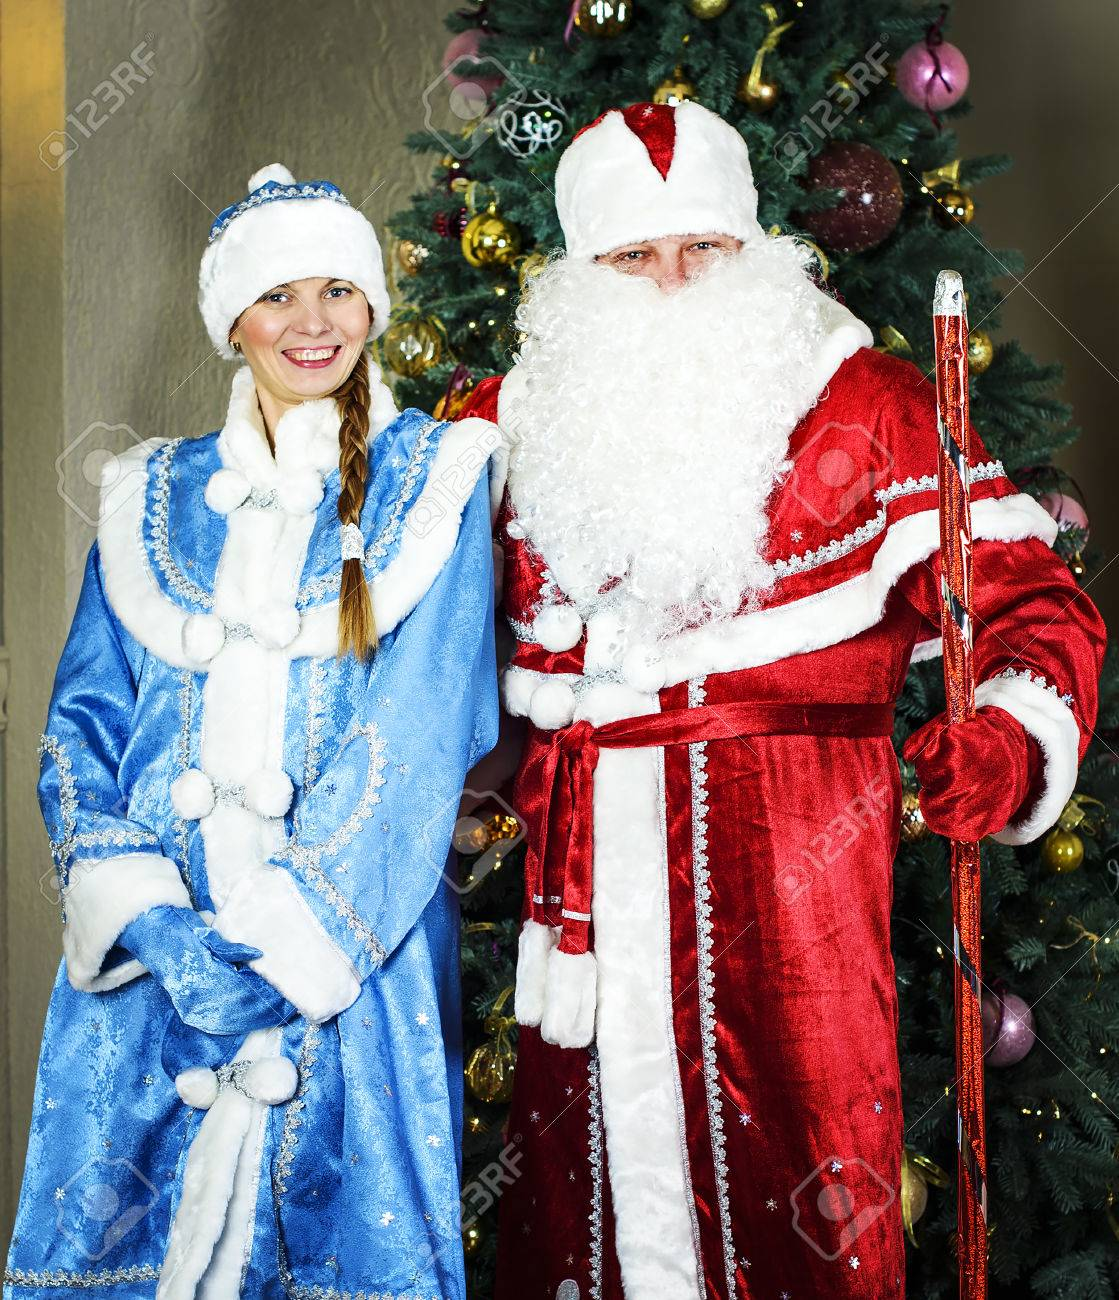 Russian Christmas.Russian Christmas Characters Ded Moroz Father Frost And Snegurochka